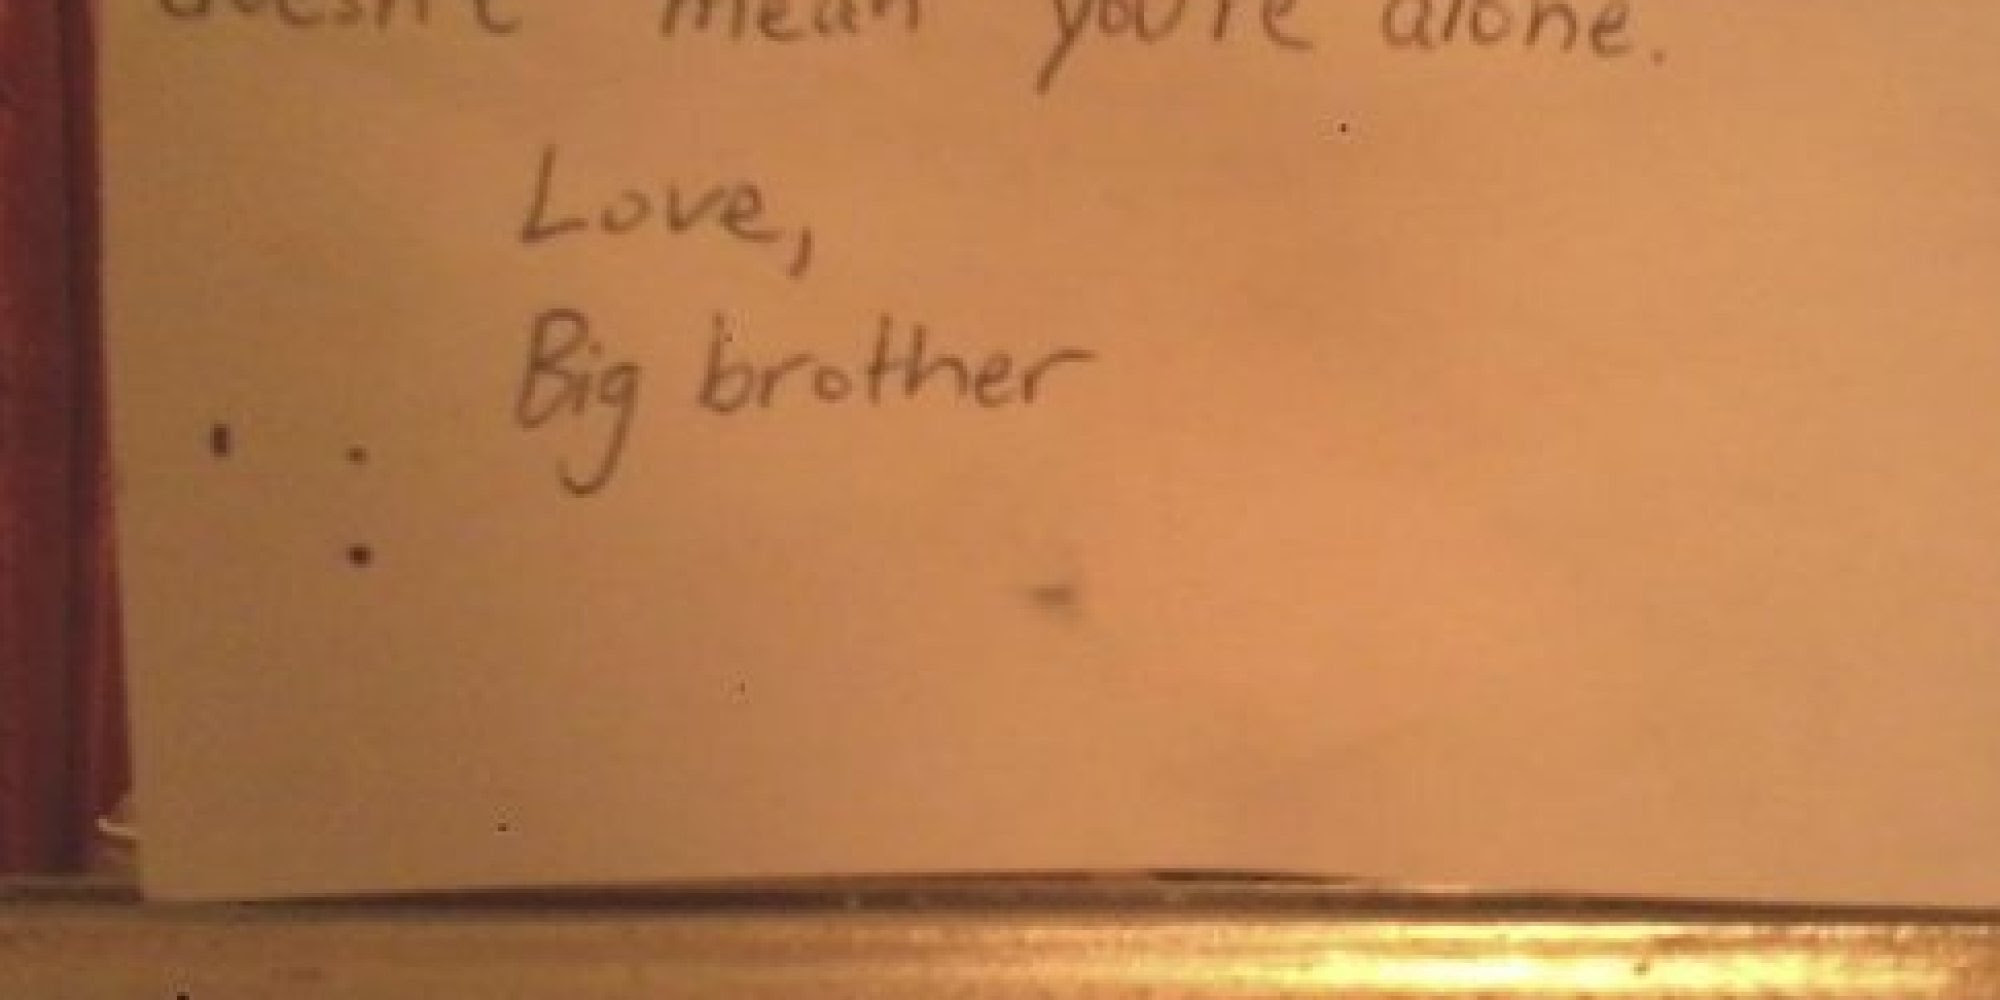 Missing Younger Brother Quotes